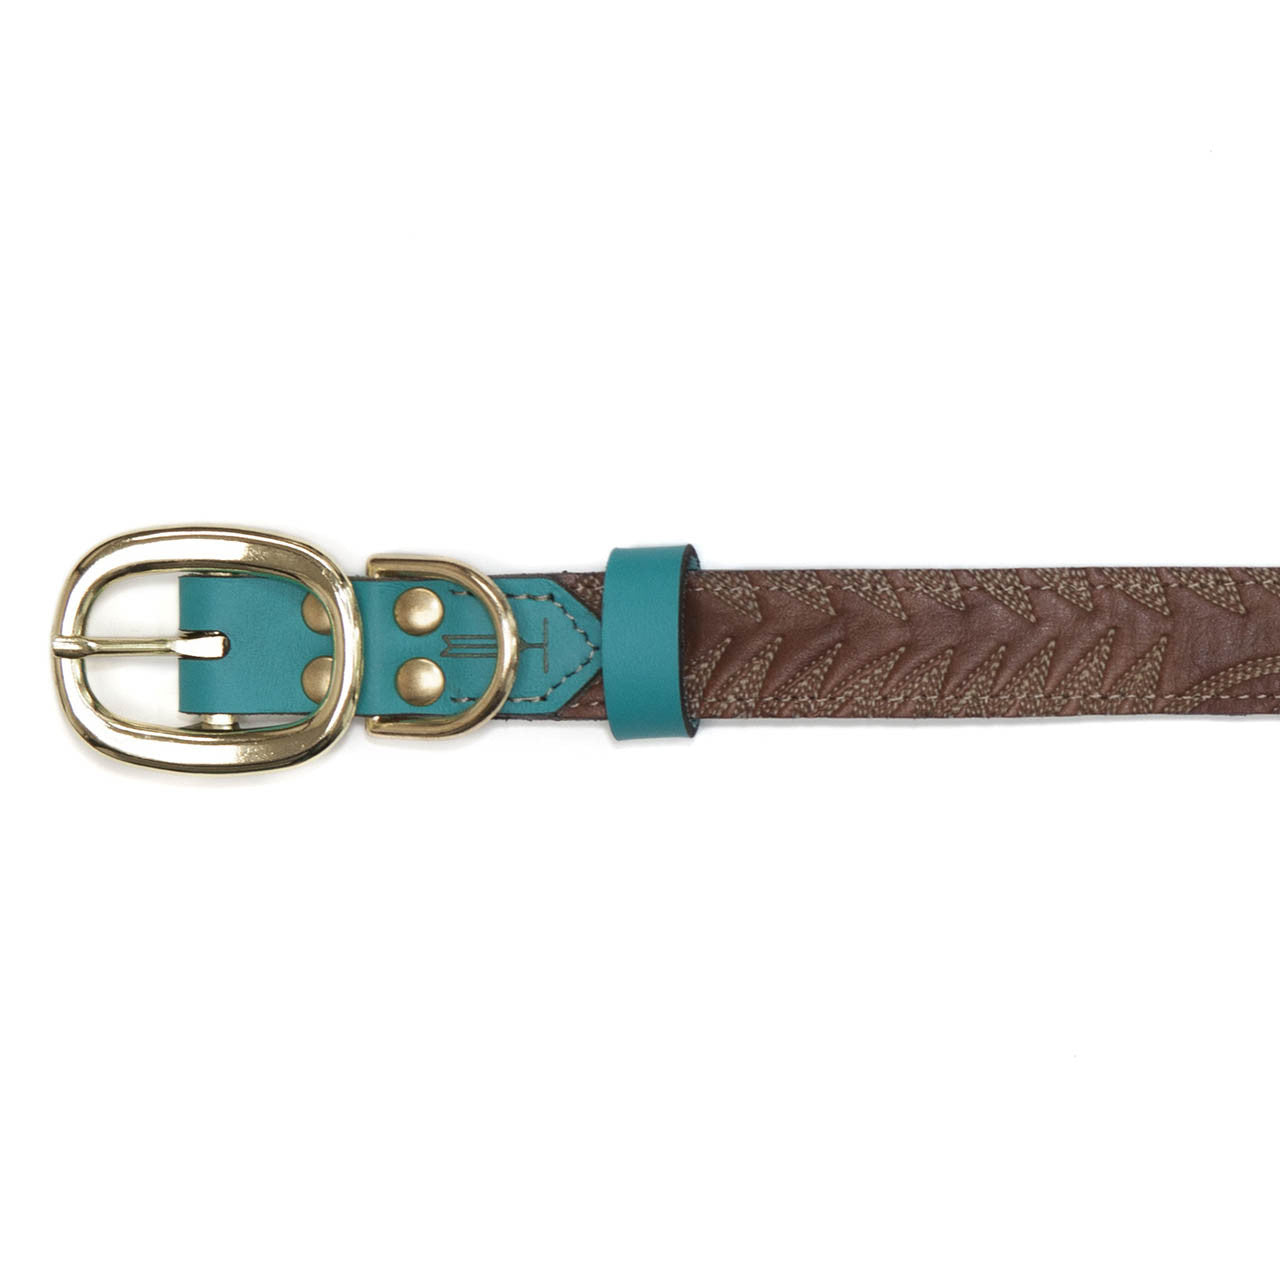 Turquoise Dog Collar with Dark Brown Leather + White Stitching (buckle)